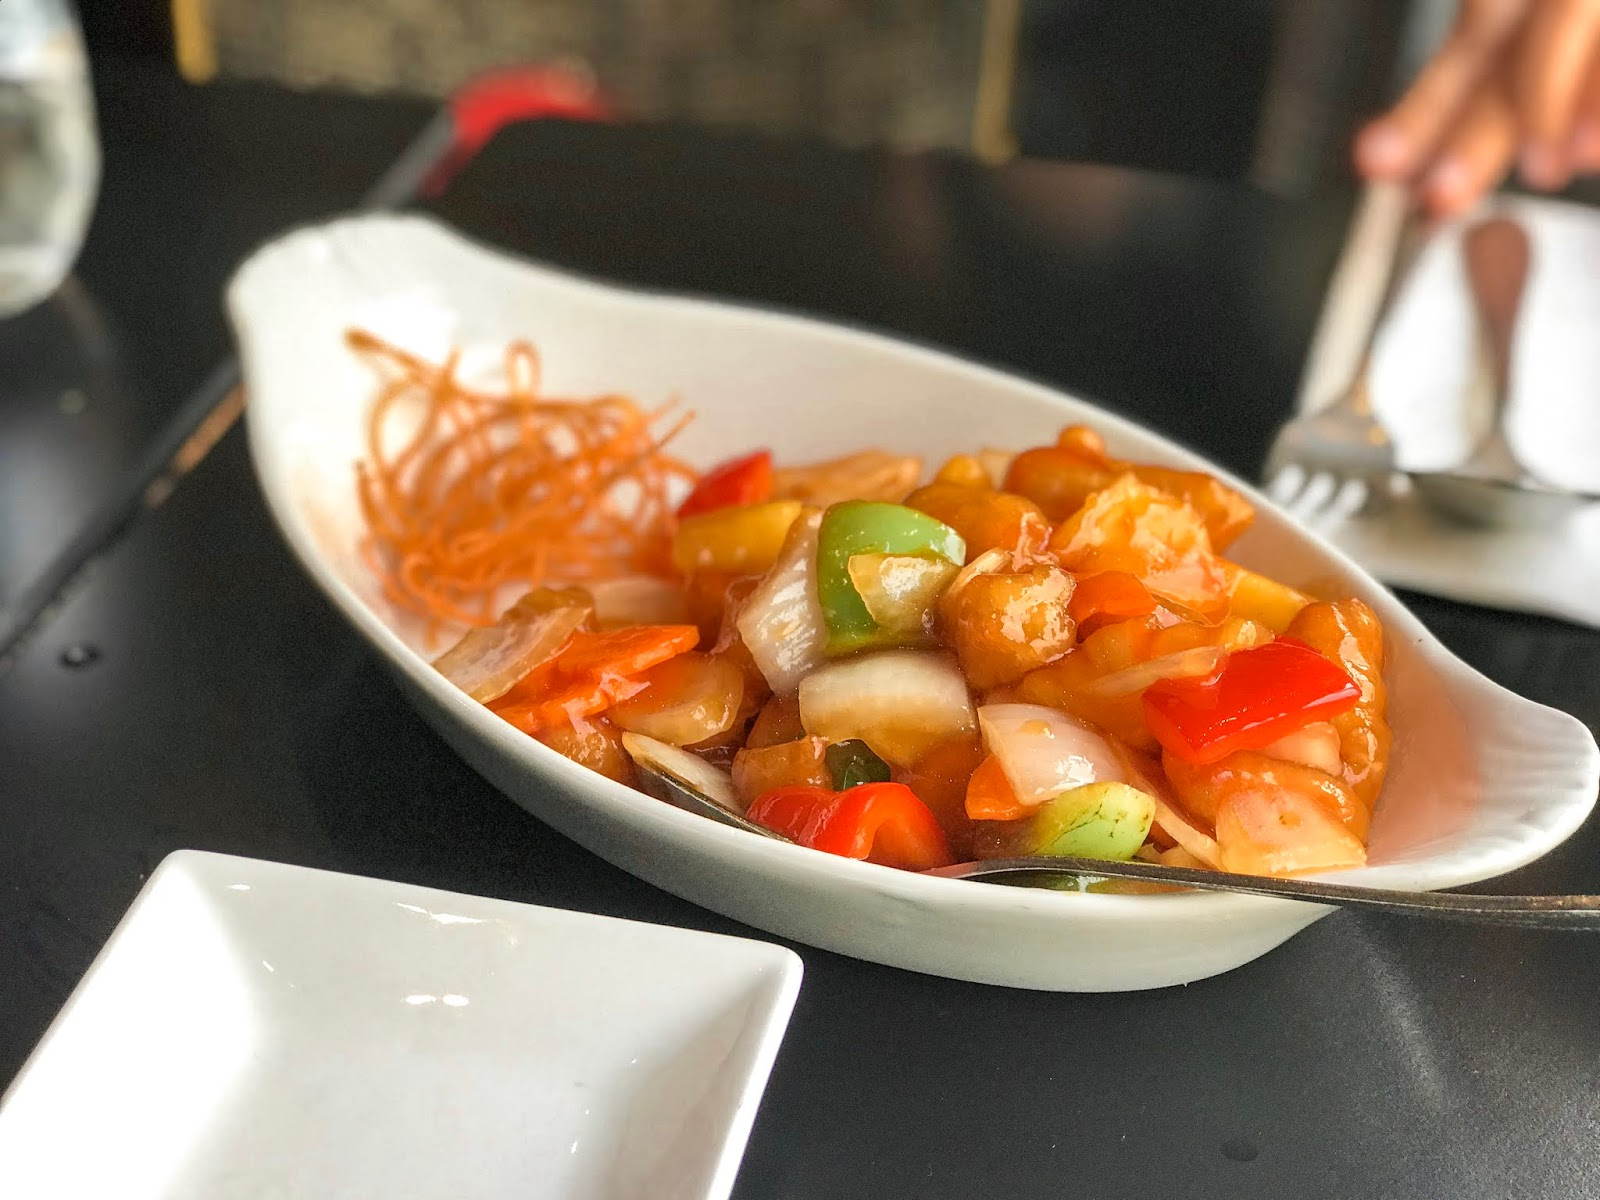 FOOD: Royal China Fulham Restaurant Review, Food Blogger, Royal China, Chinese Food, UK Blogger, Katie Kirk Loves, Blogger Review, London Blogger, London Restaurant, Fulham Restaurant, Lifestyle Blogger, London Food Review